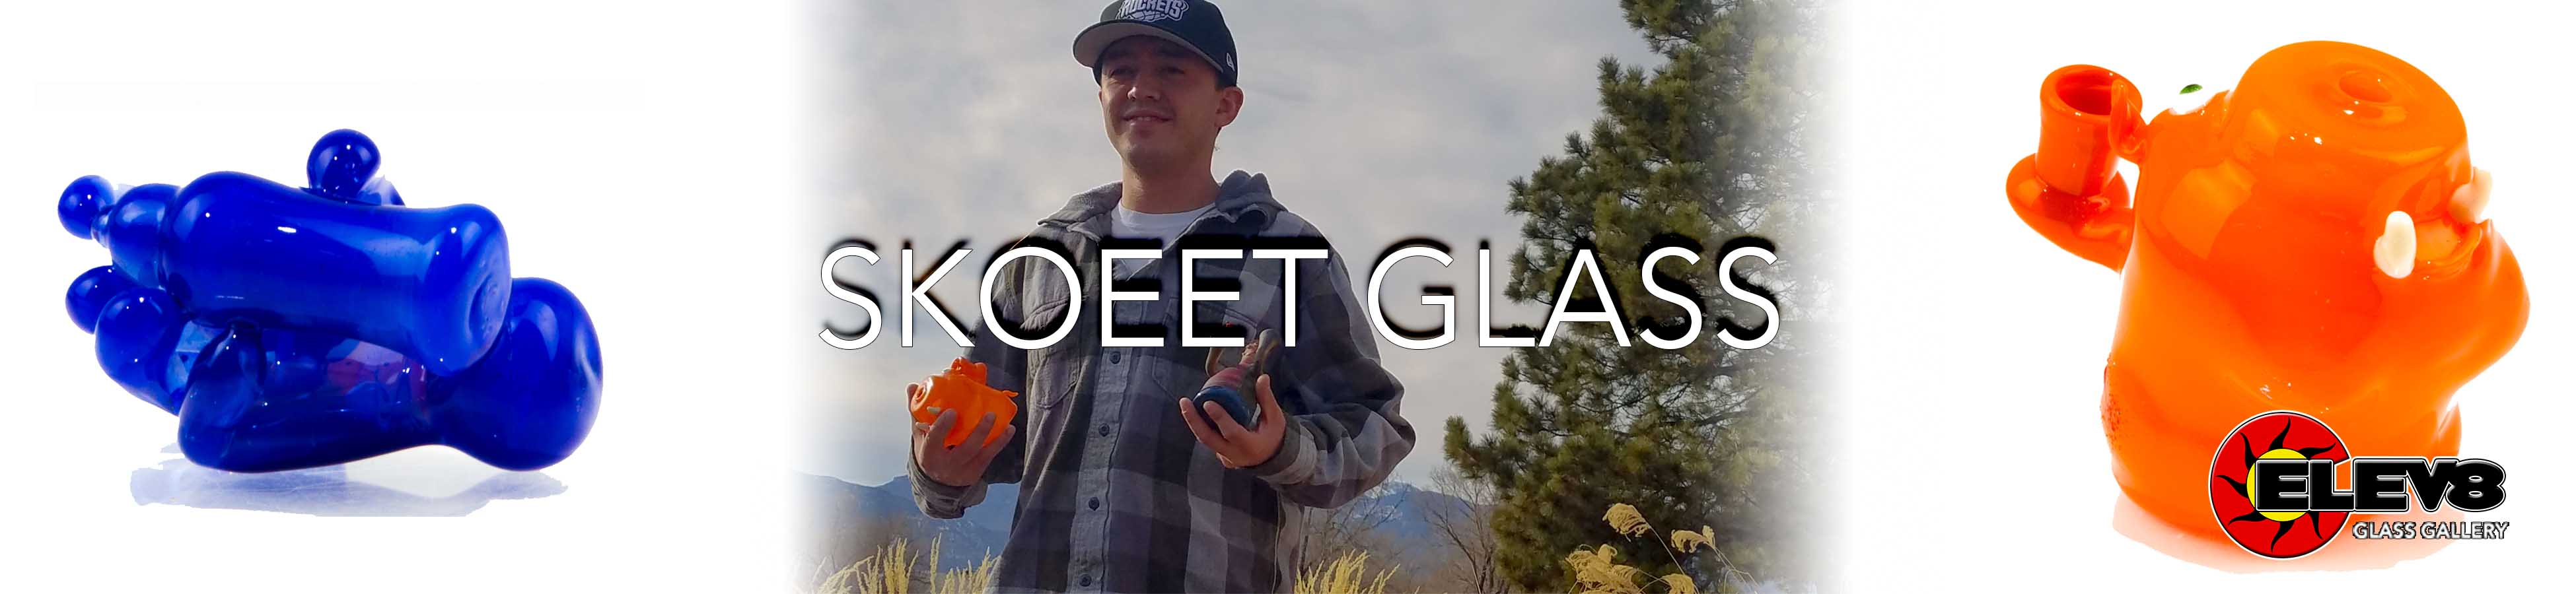 skoeet-glass-web-banner.jpg